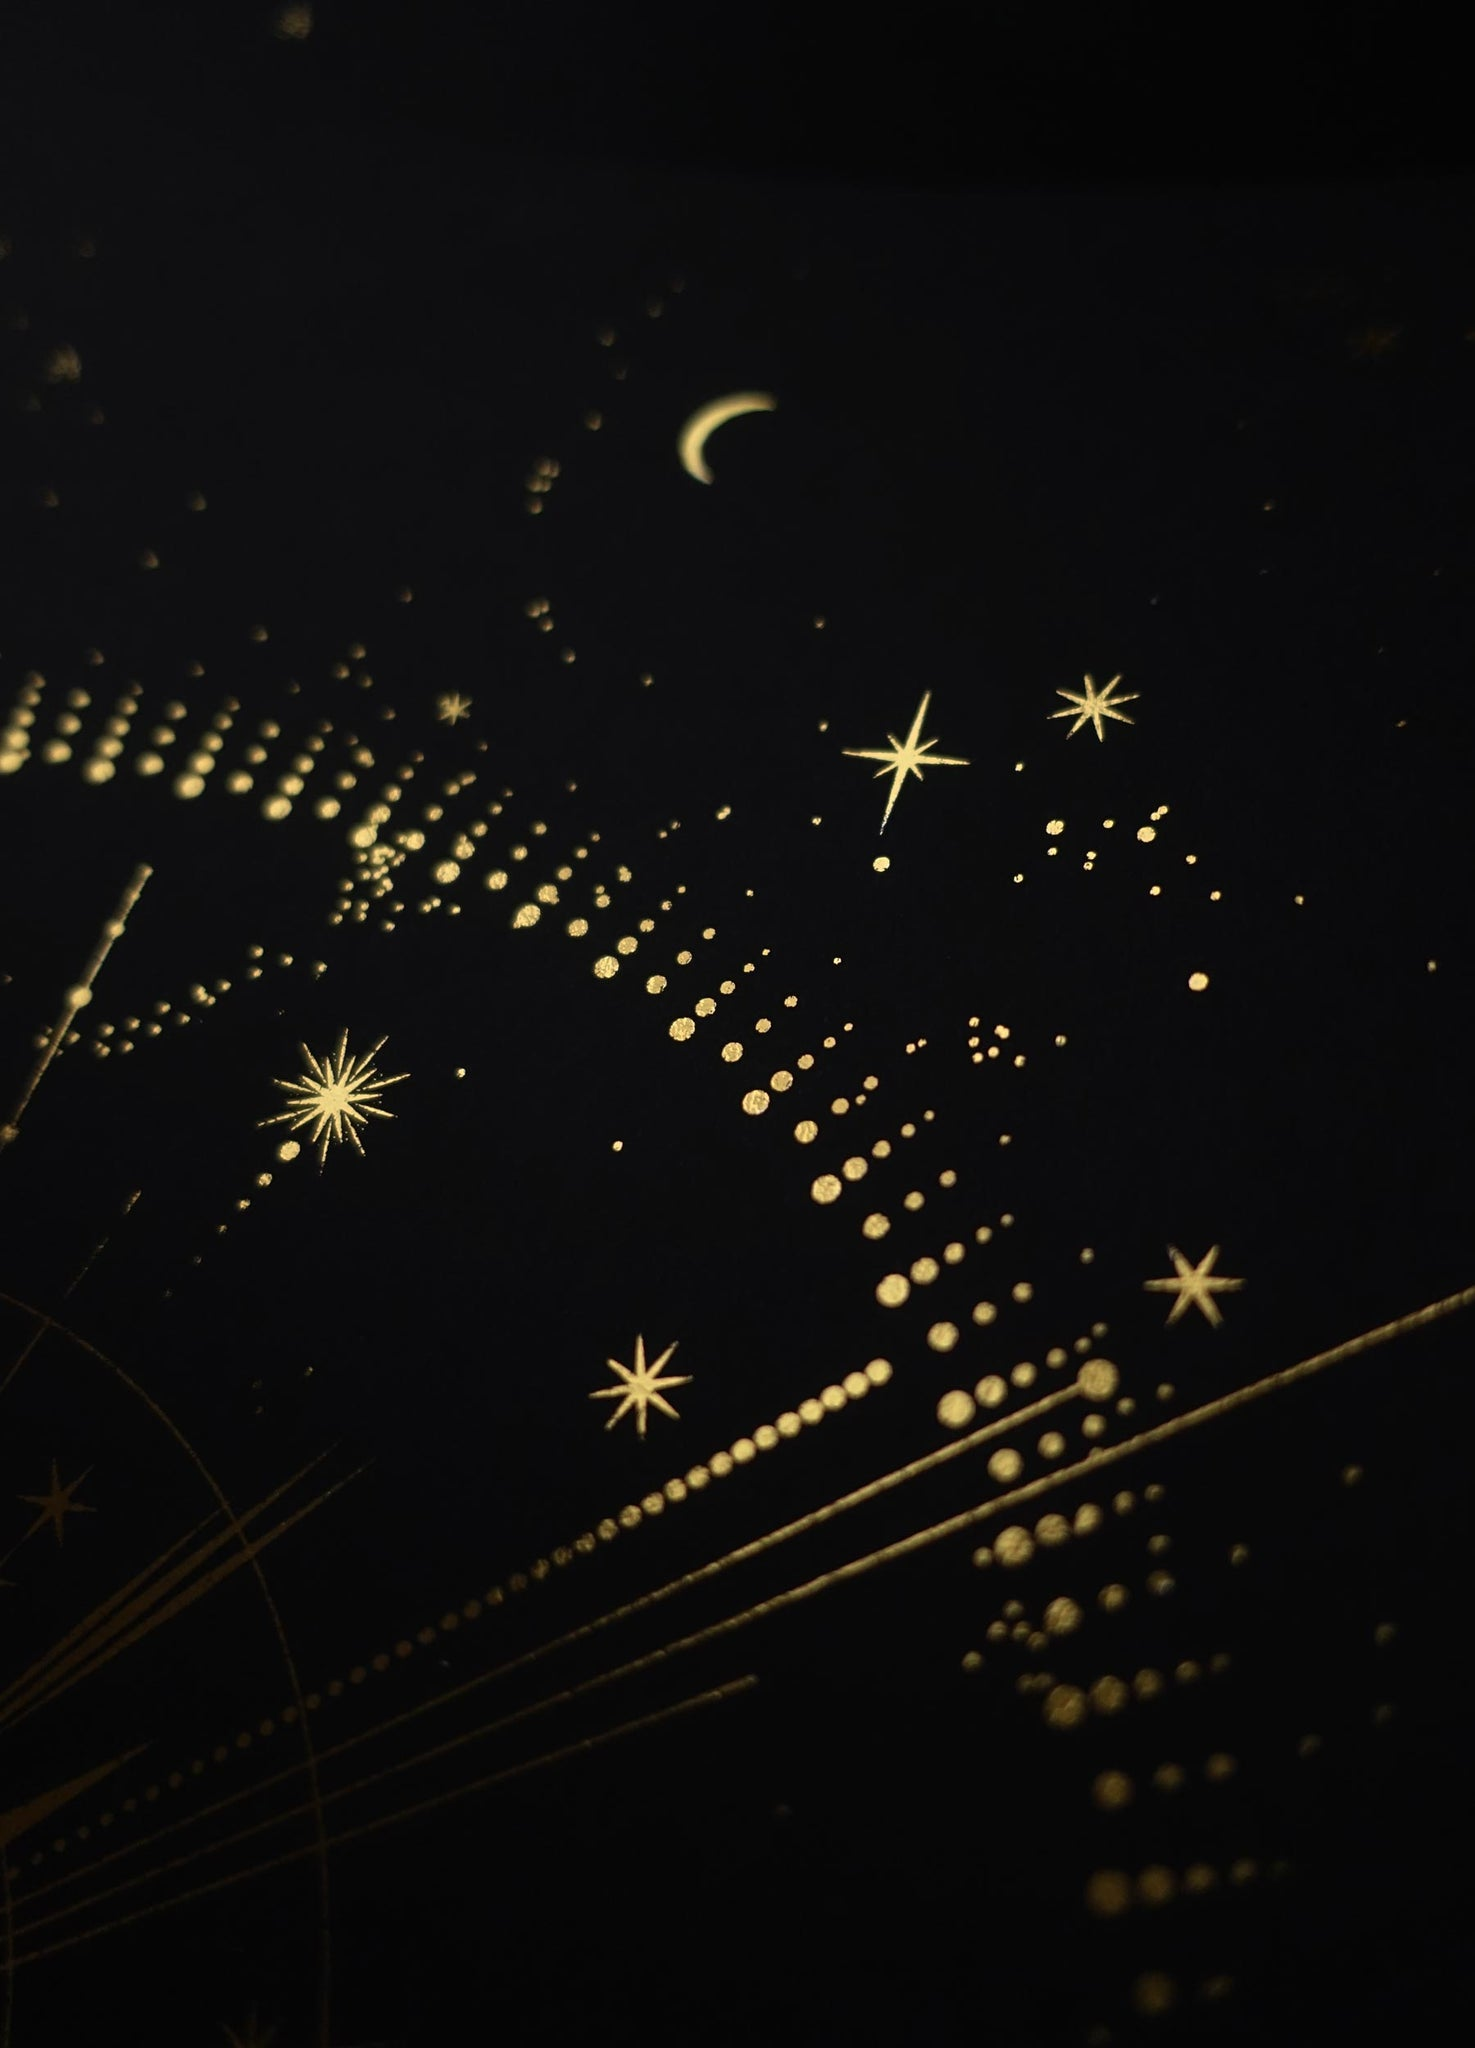 Star in the night sky personalised art print in gold foil and black paper with stars and moon by Cocorrina